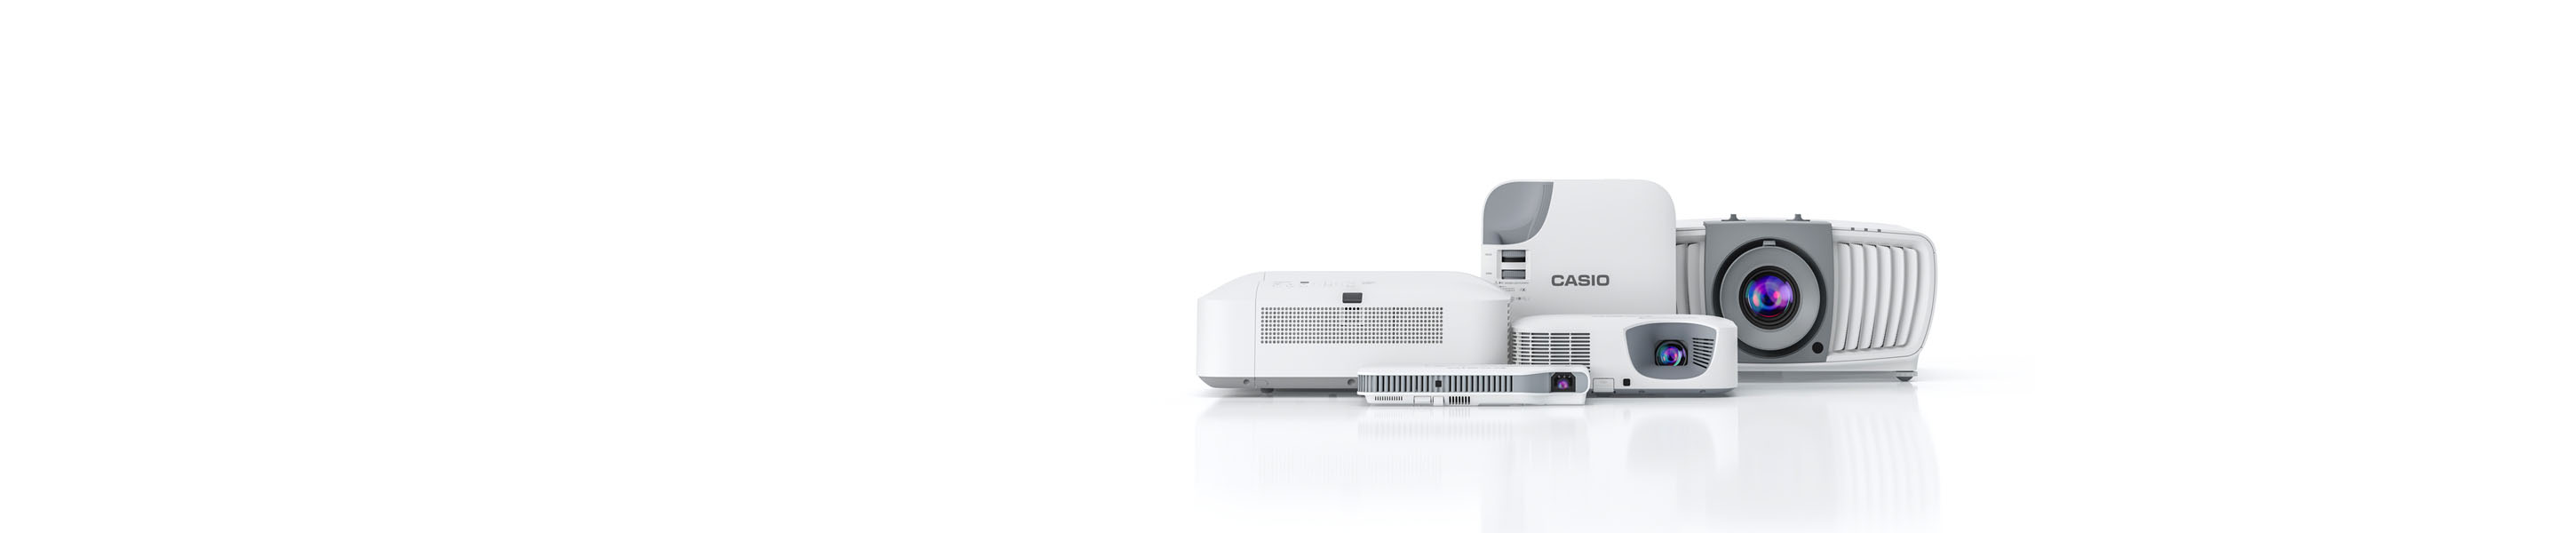 Meet the Projectors Family. Simple. Faster. Brighter. Better.